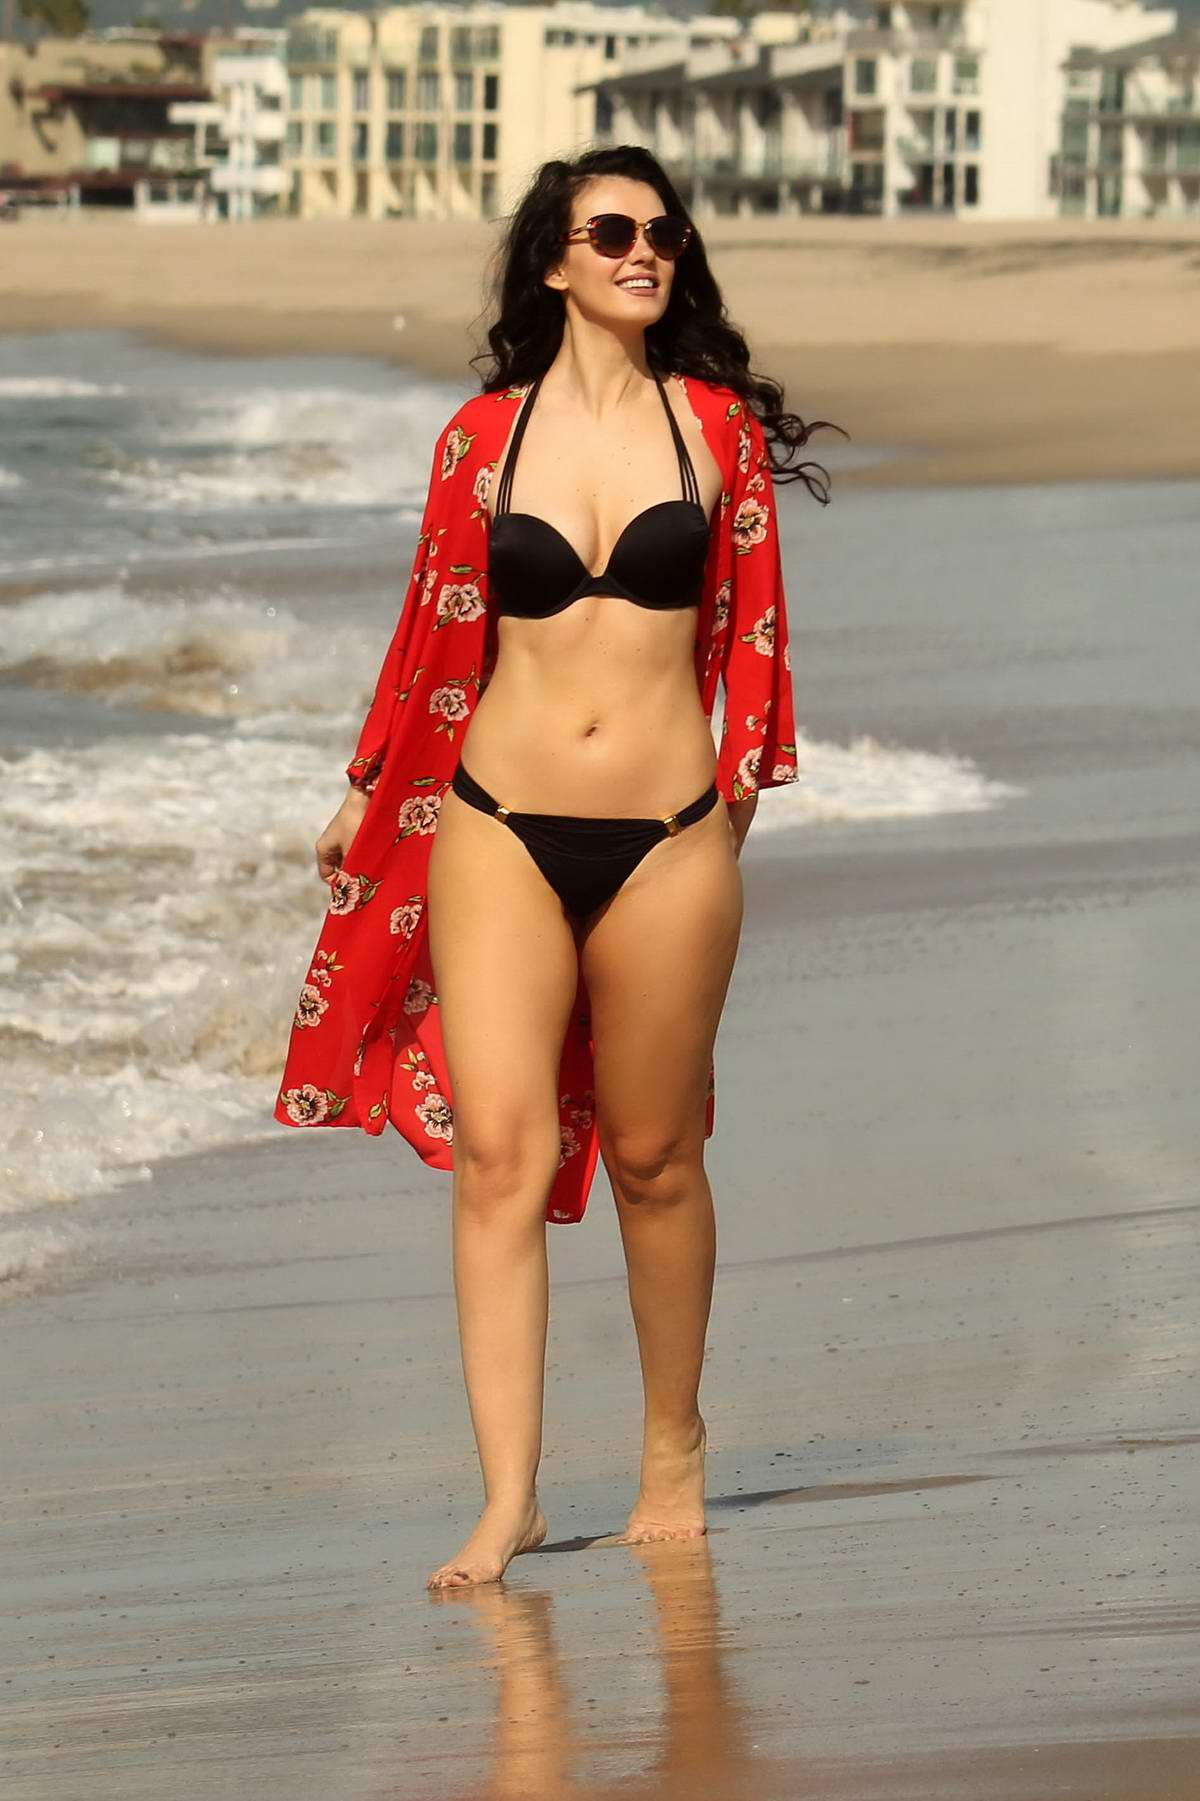 Natasha Blasick spotted in a black bikini while having fun on the beach in Malibu, California